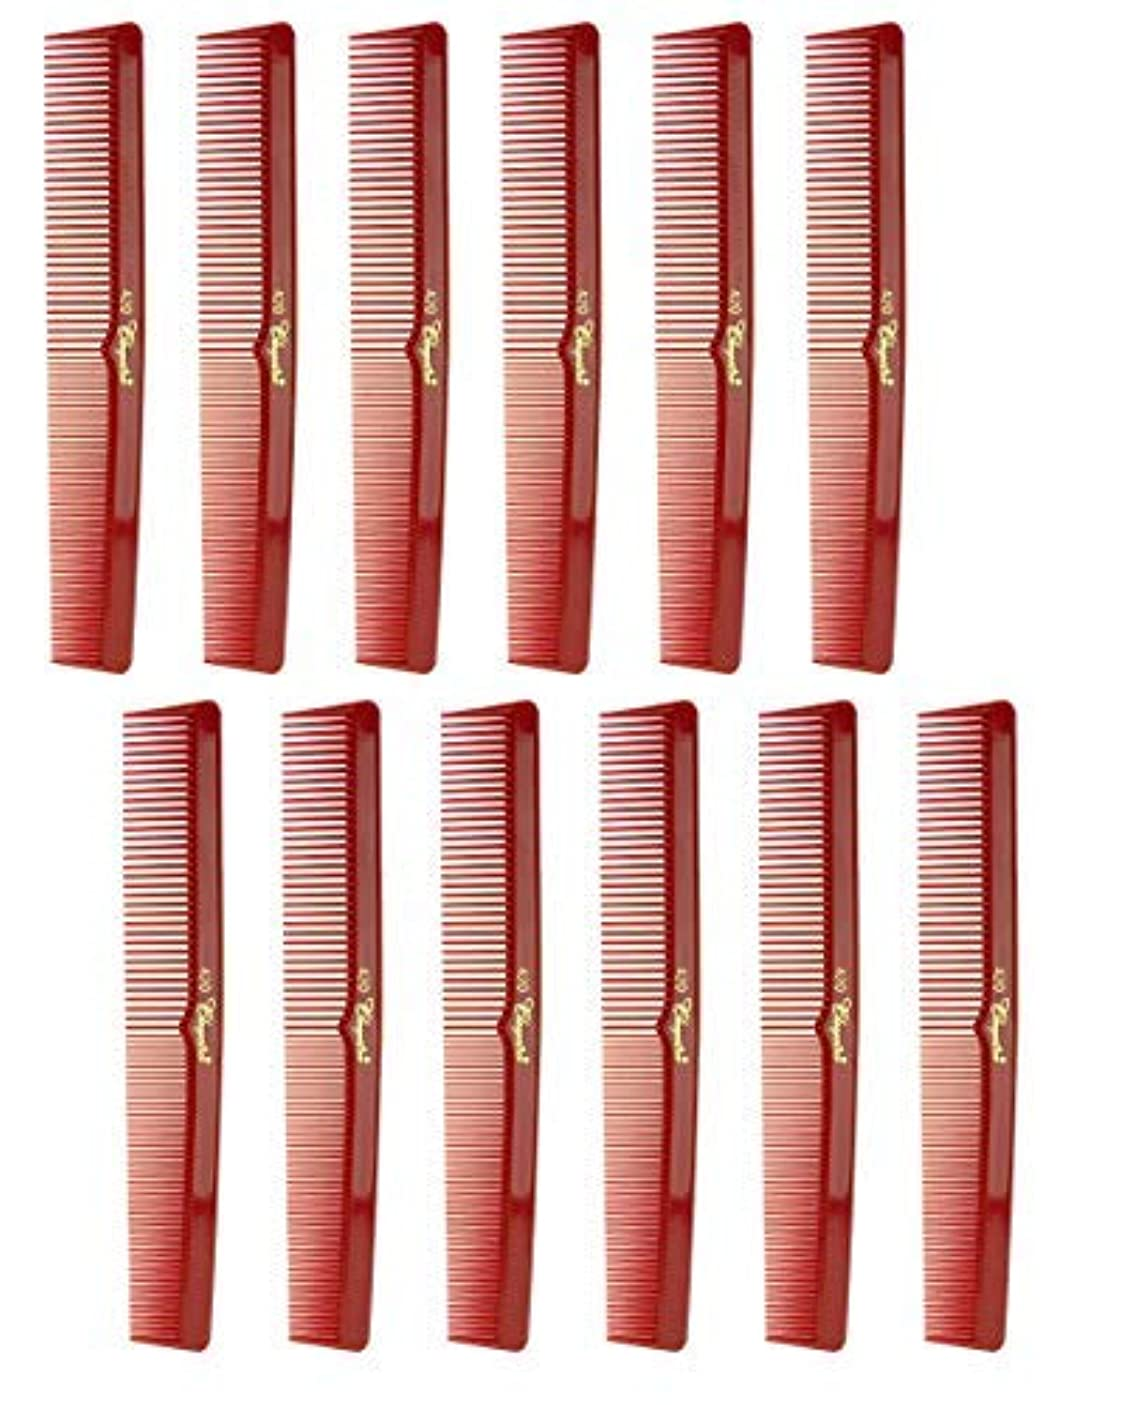 クック溶岩電報7 Inch Hair Cutting Comb. Barber's & Hairstylist Combs. Red. 1 DZ. [並行輸入品]